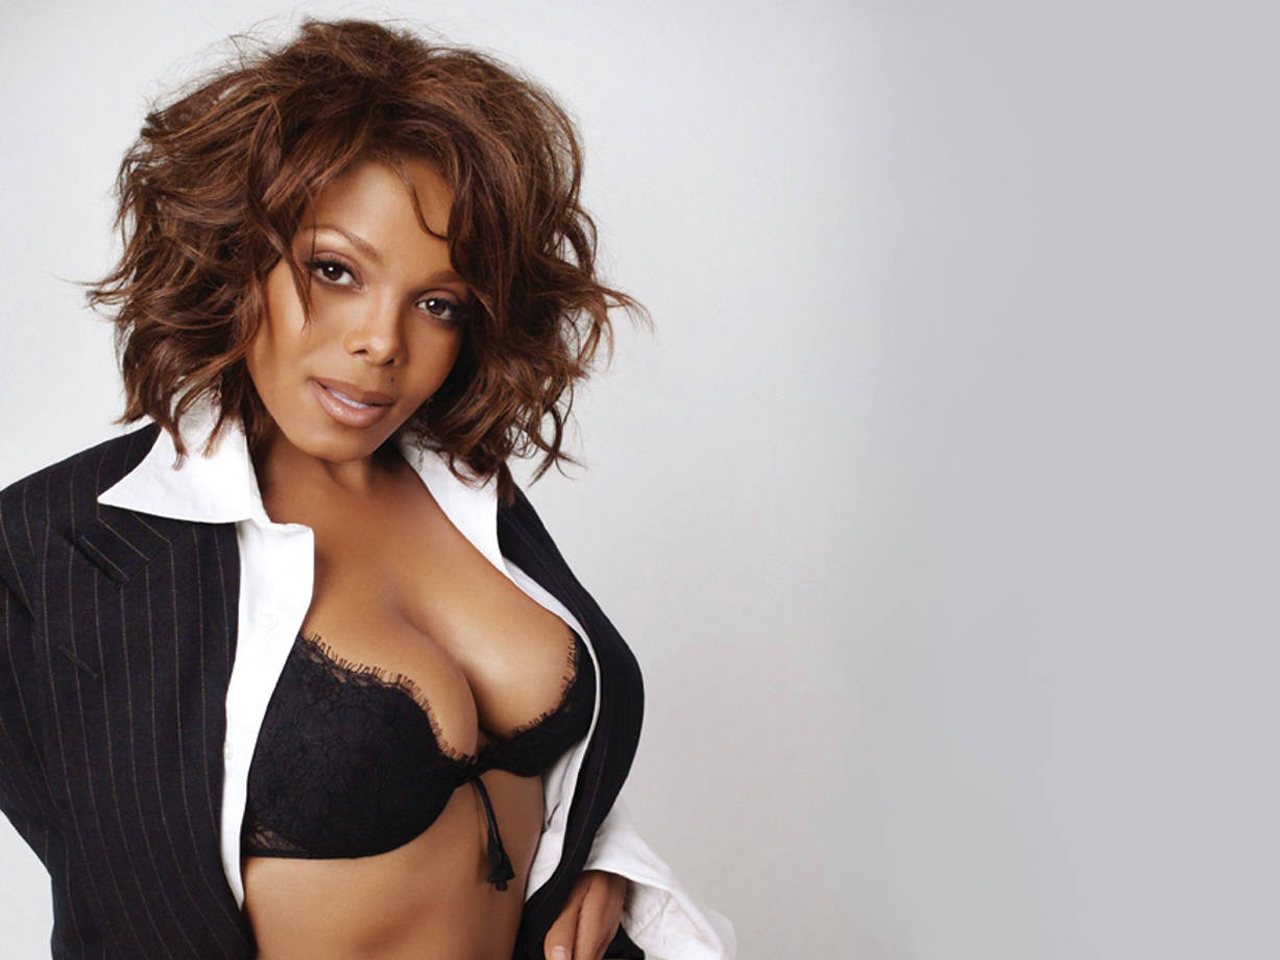 Janet jackson's tits